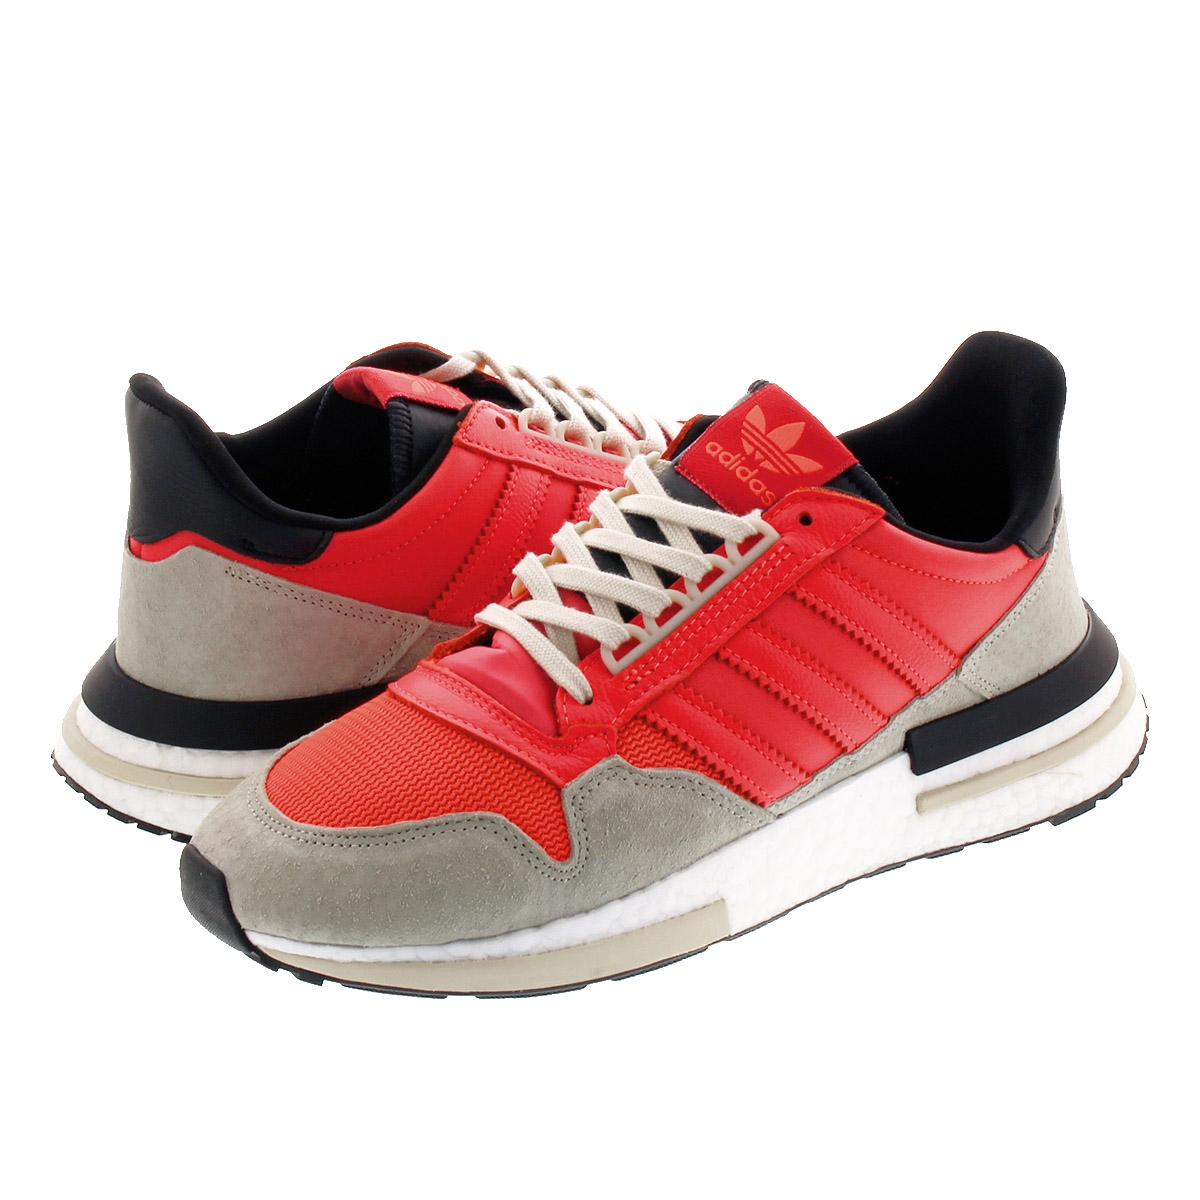 cost charm pre order affordable price adidas ZX 500 RM Adidas ZX 500 RM SOLAR RED/CORE BLACK/RUNNING WHITE db2739